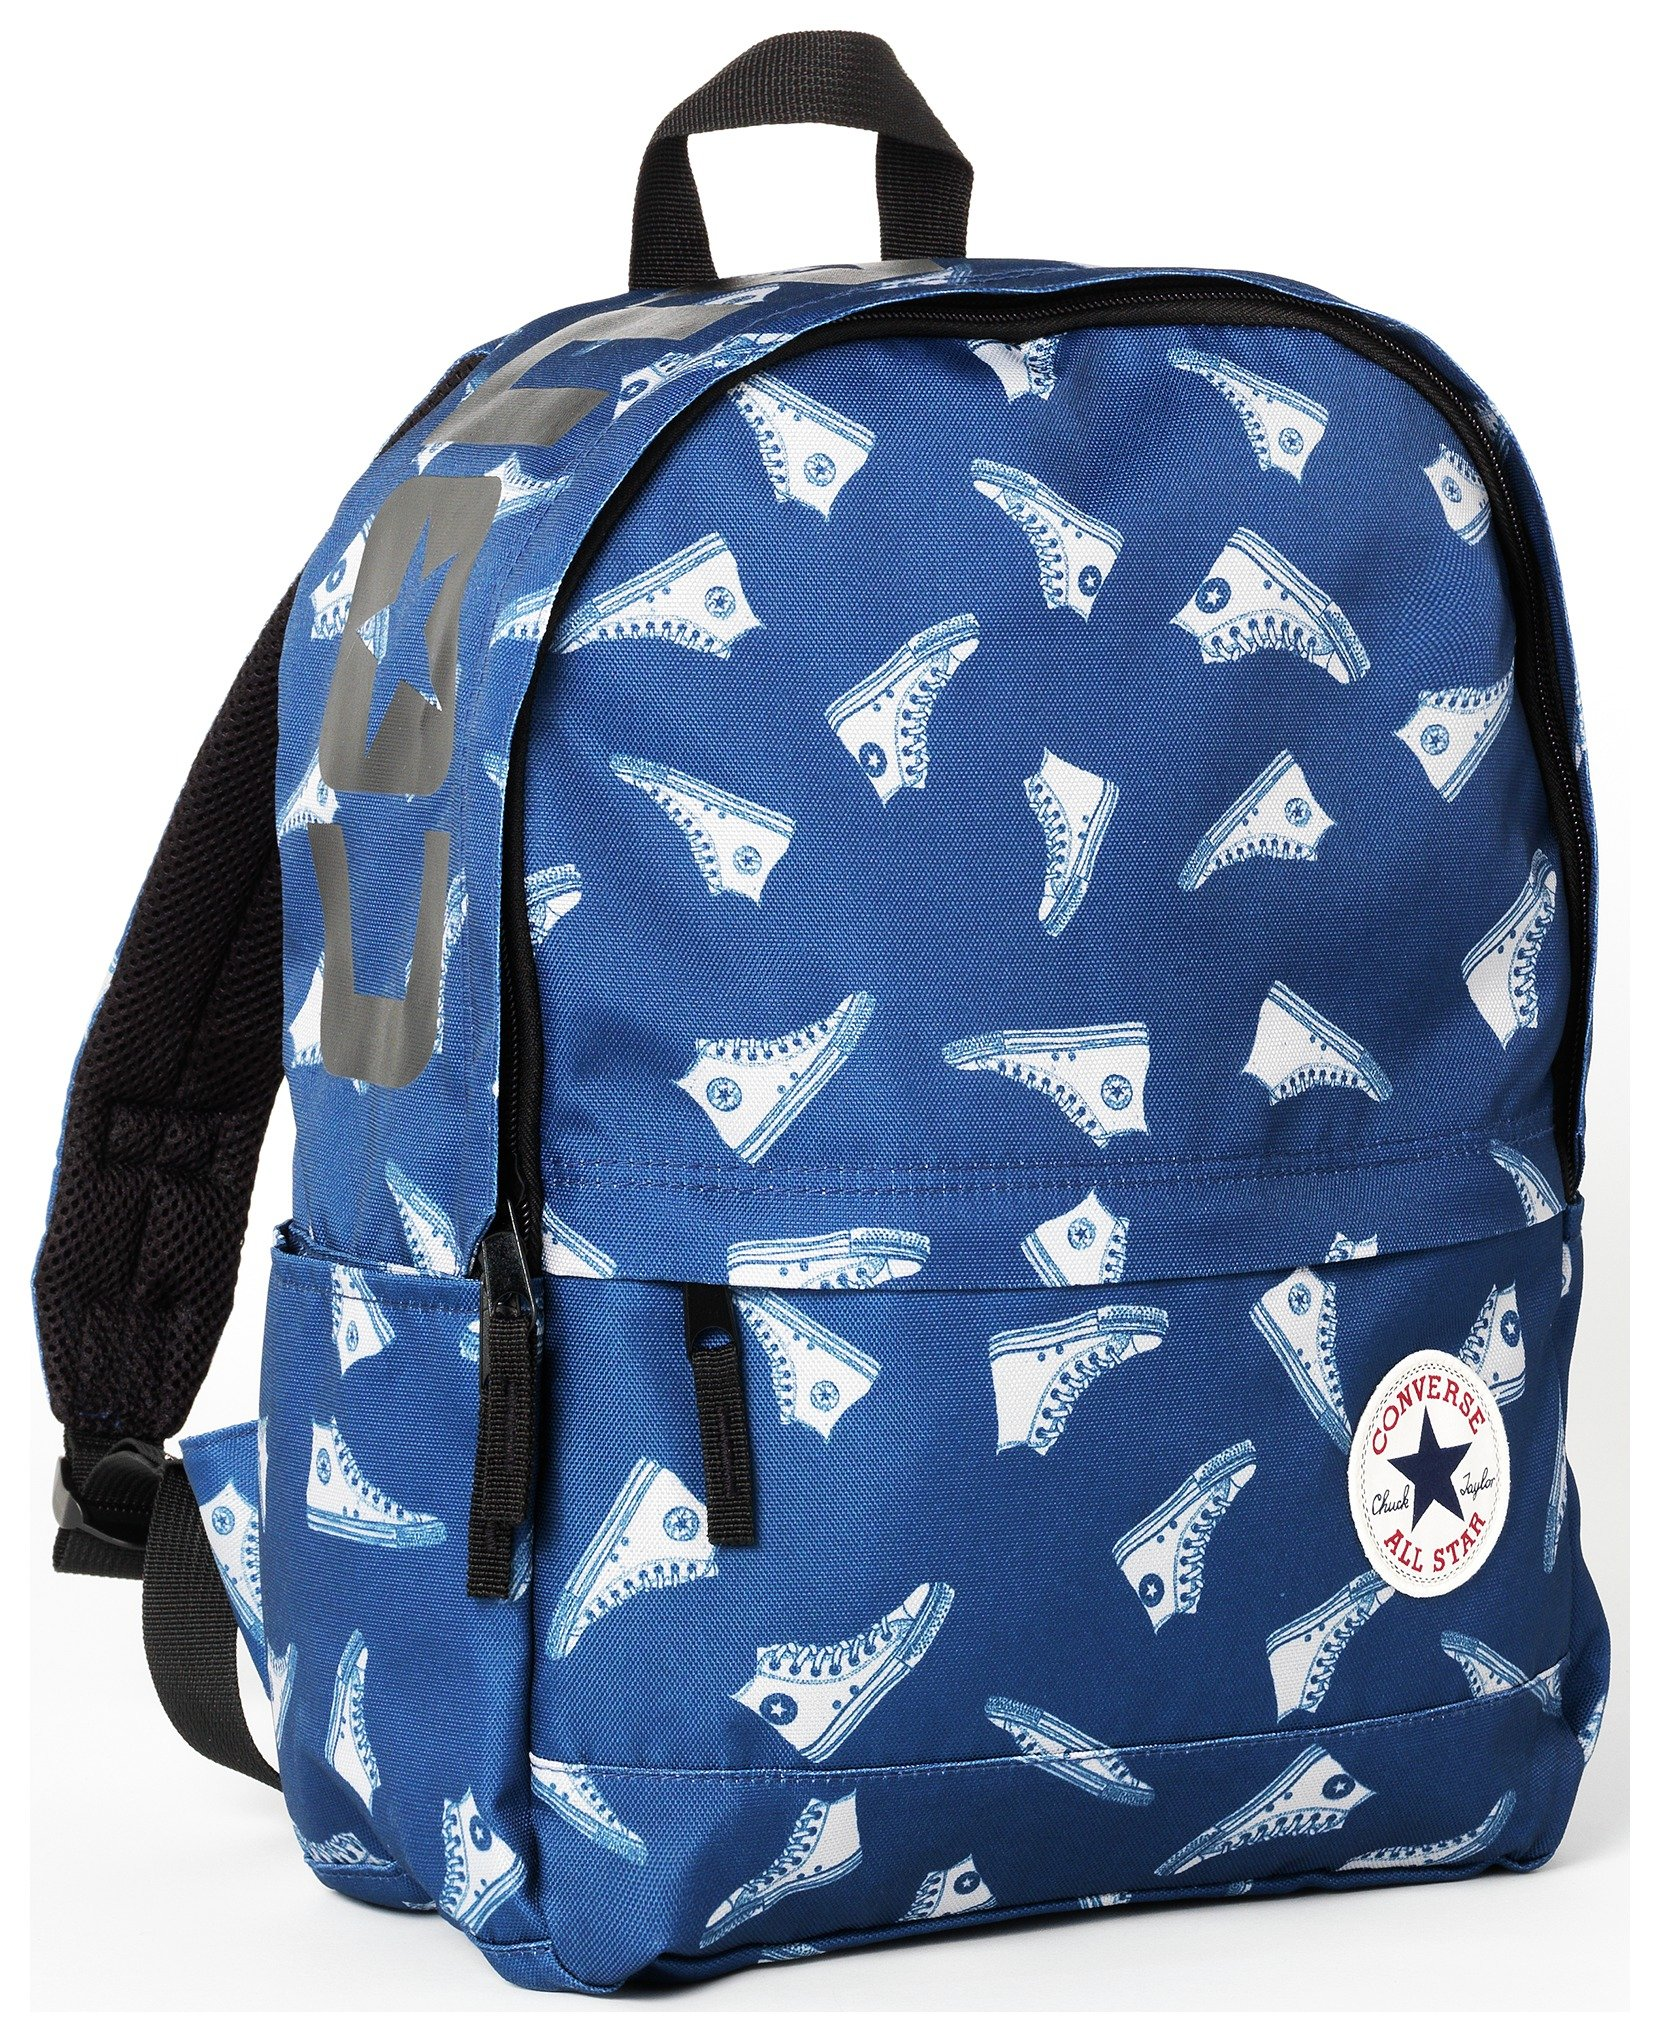 Image of Converse - Blue and White Trainer Print Backpack